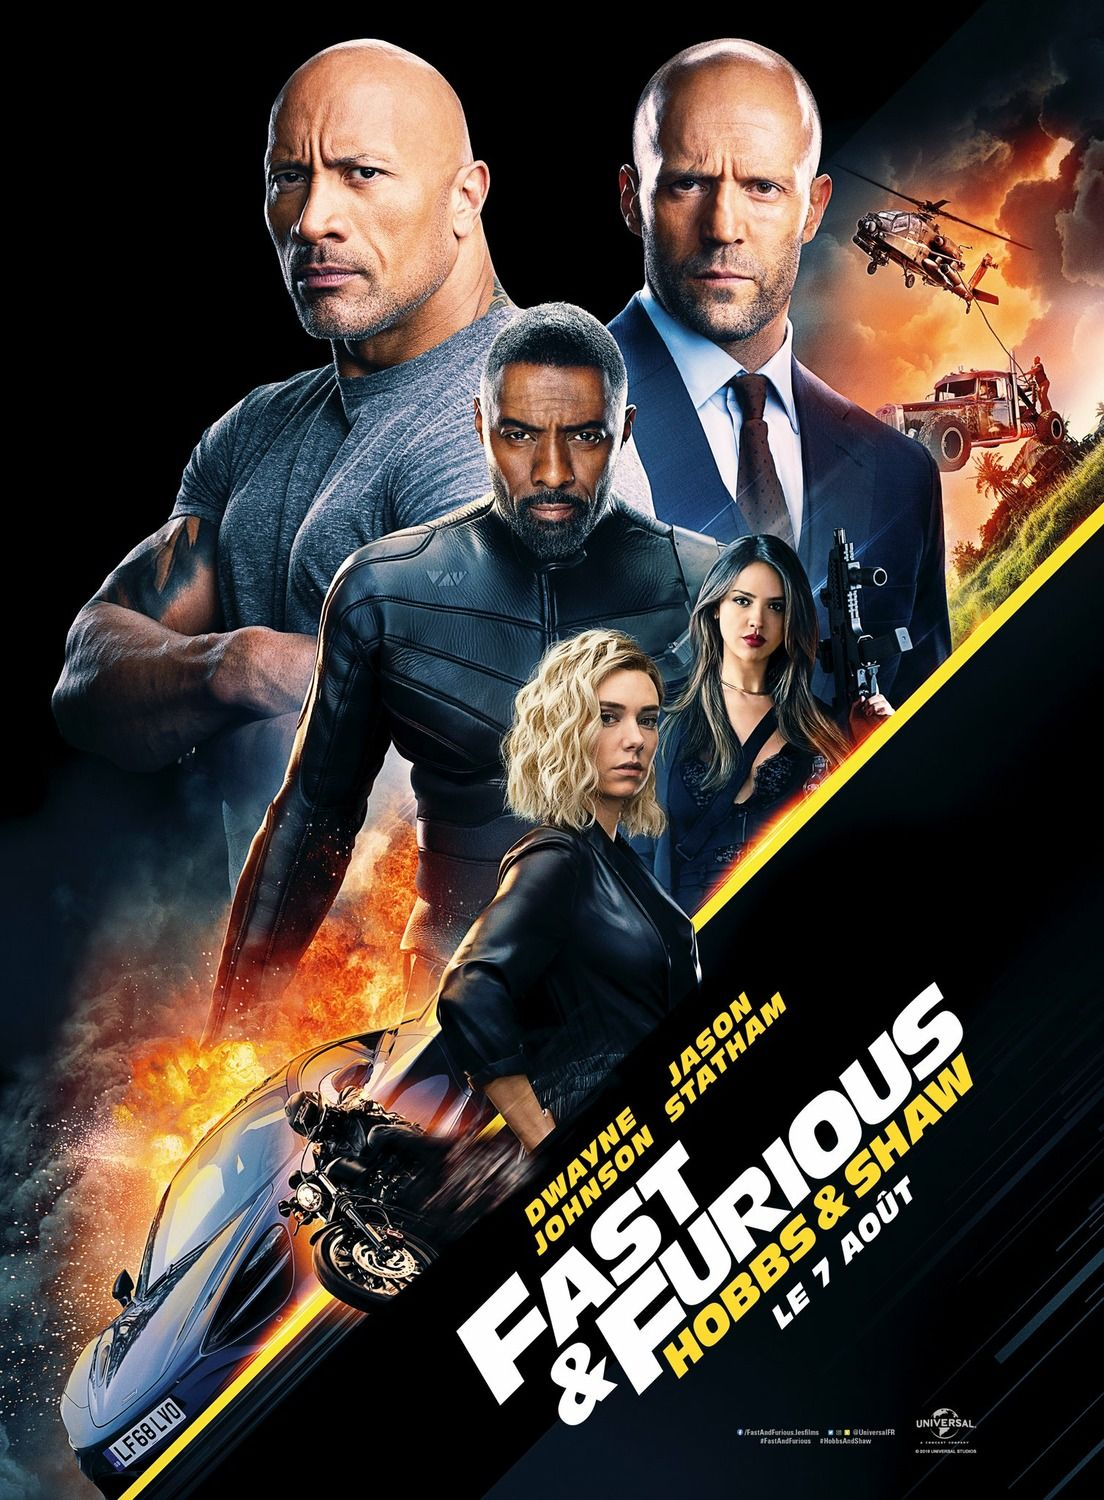 Fast And Furious Presents Hobbs And Shaw New Poster Https Teaser Trailer Com Movie Ho Peliculas En Estreno Peliculas En Espanol Pelicula Rapido Y Furioso